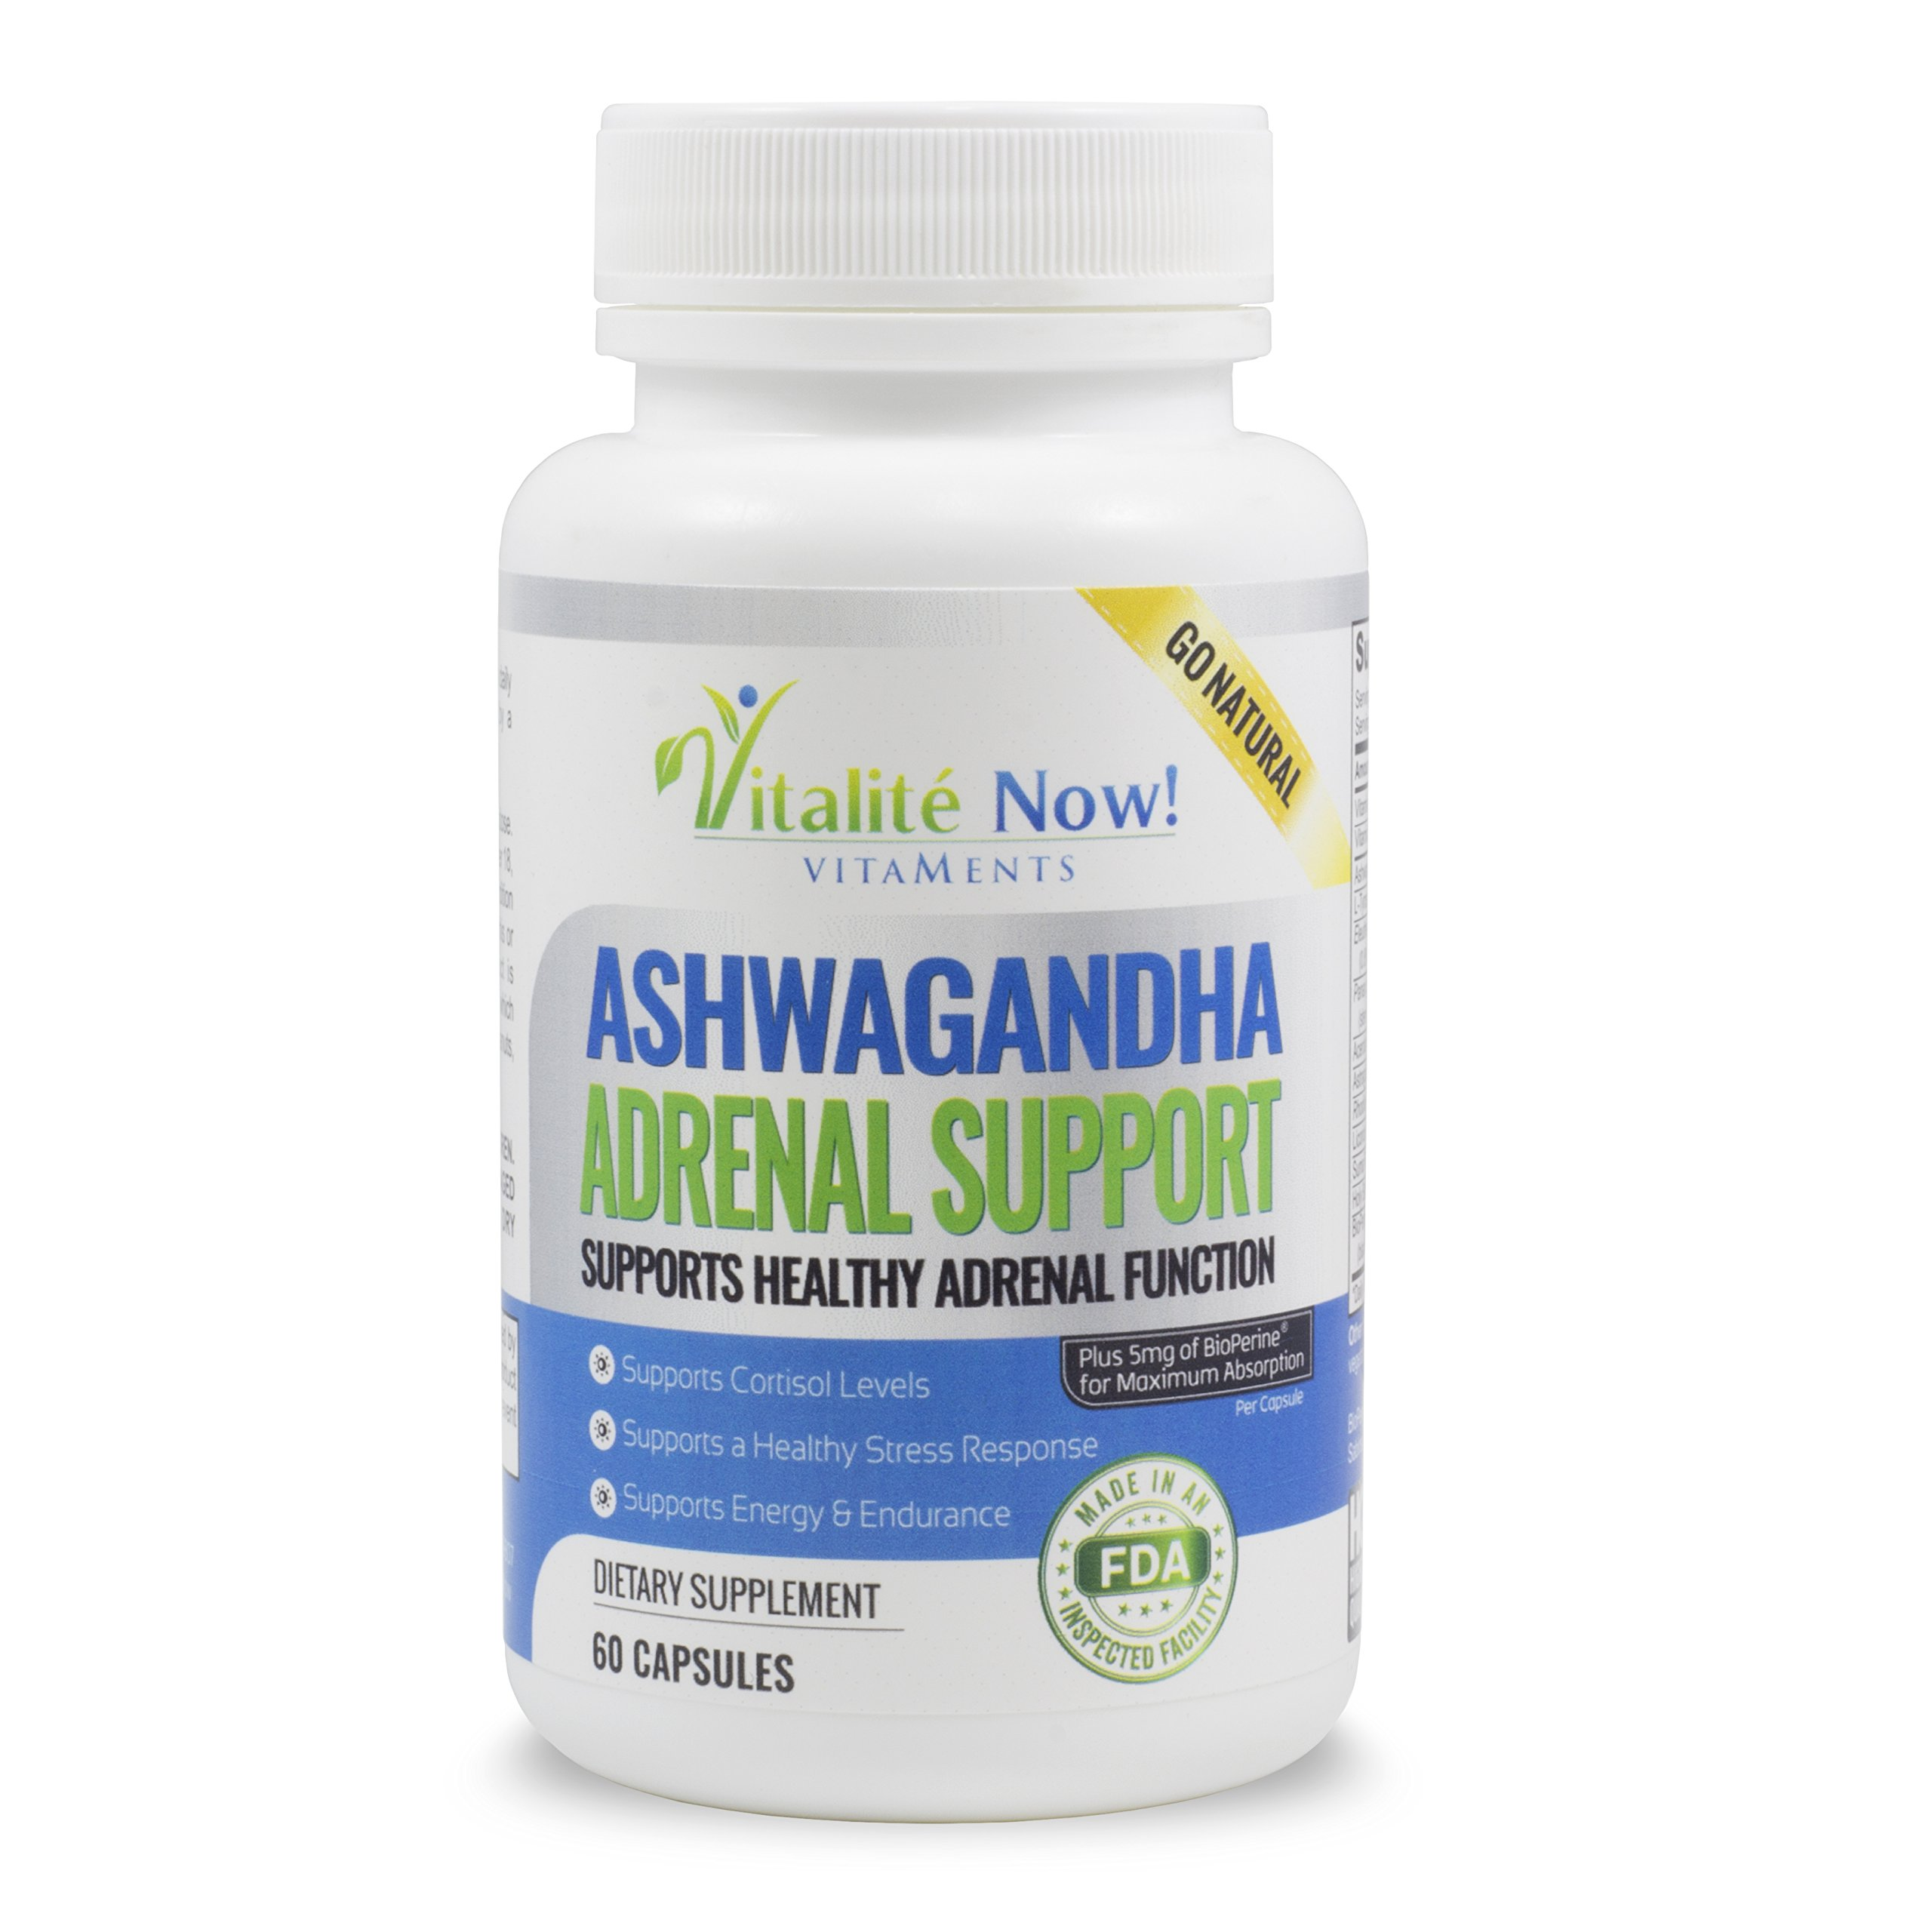 Best Adrenal Support - Ashwagandha, Vit C & B-6, L-Tyrosine, Ginseng, Licorice, Rhodiola Rosea, Holy Basil Leaf & more - Helps Fatigue, Stress, Cortisol, Energy, Calming - 60 capsules (2 mths)